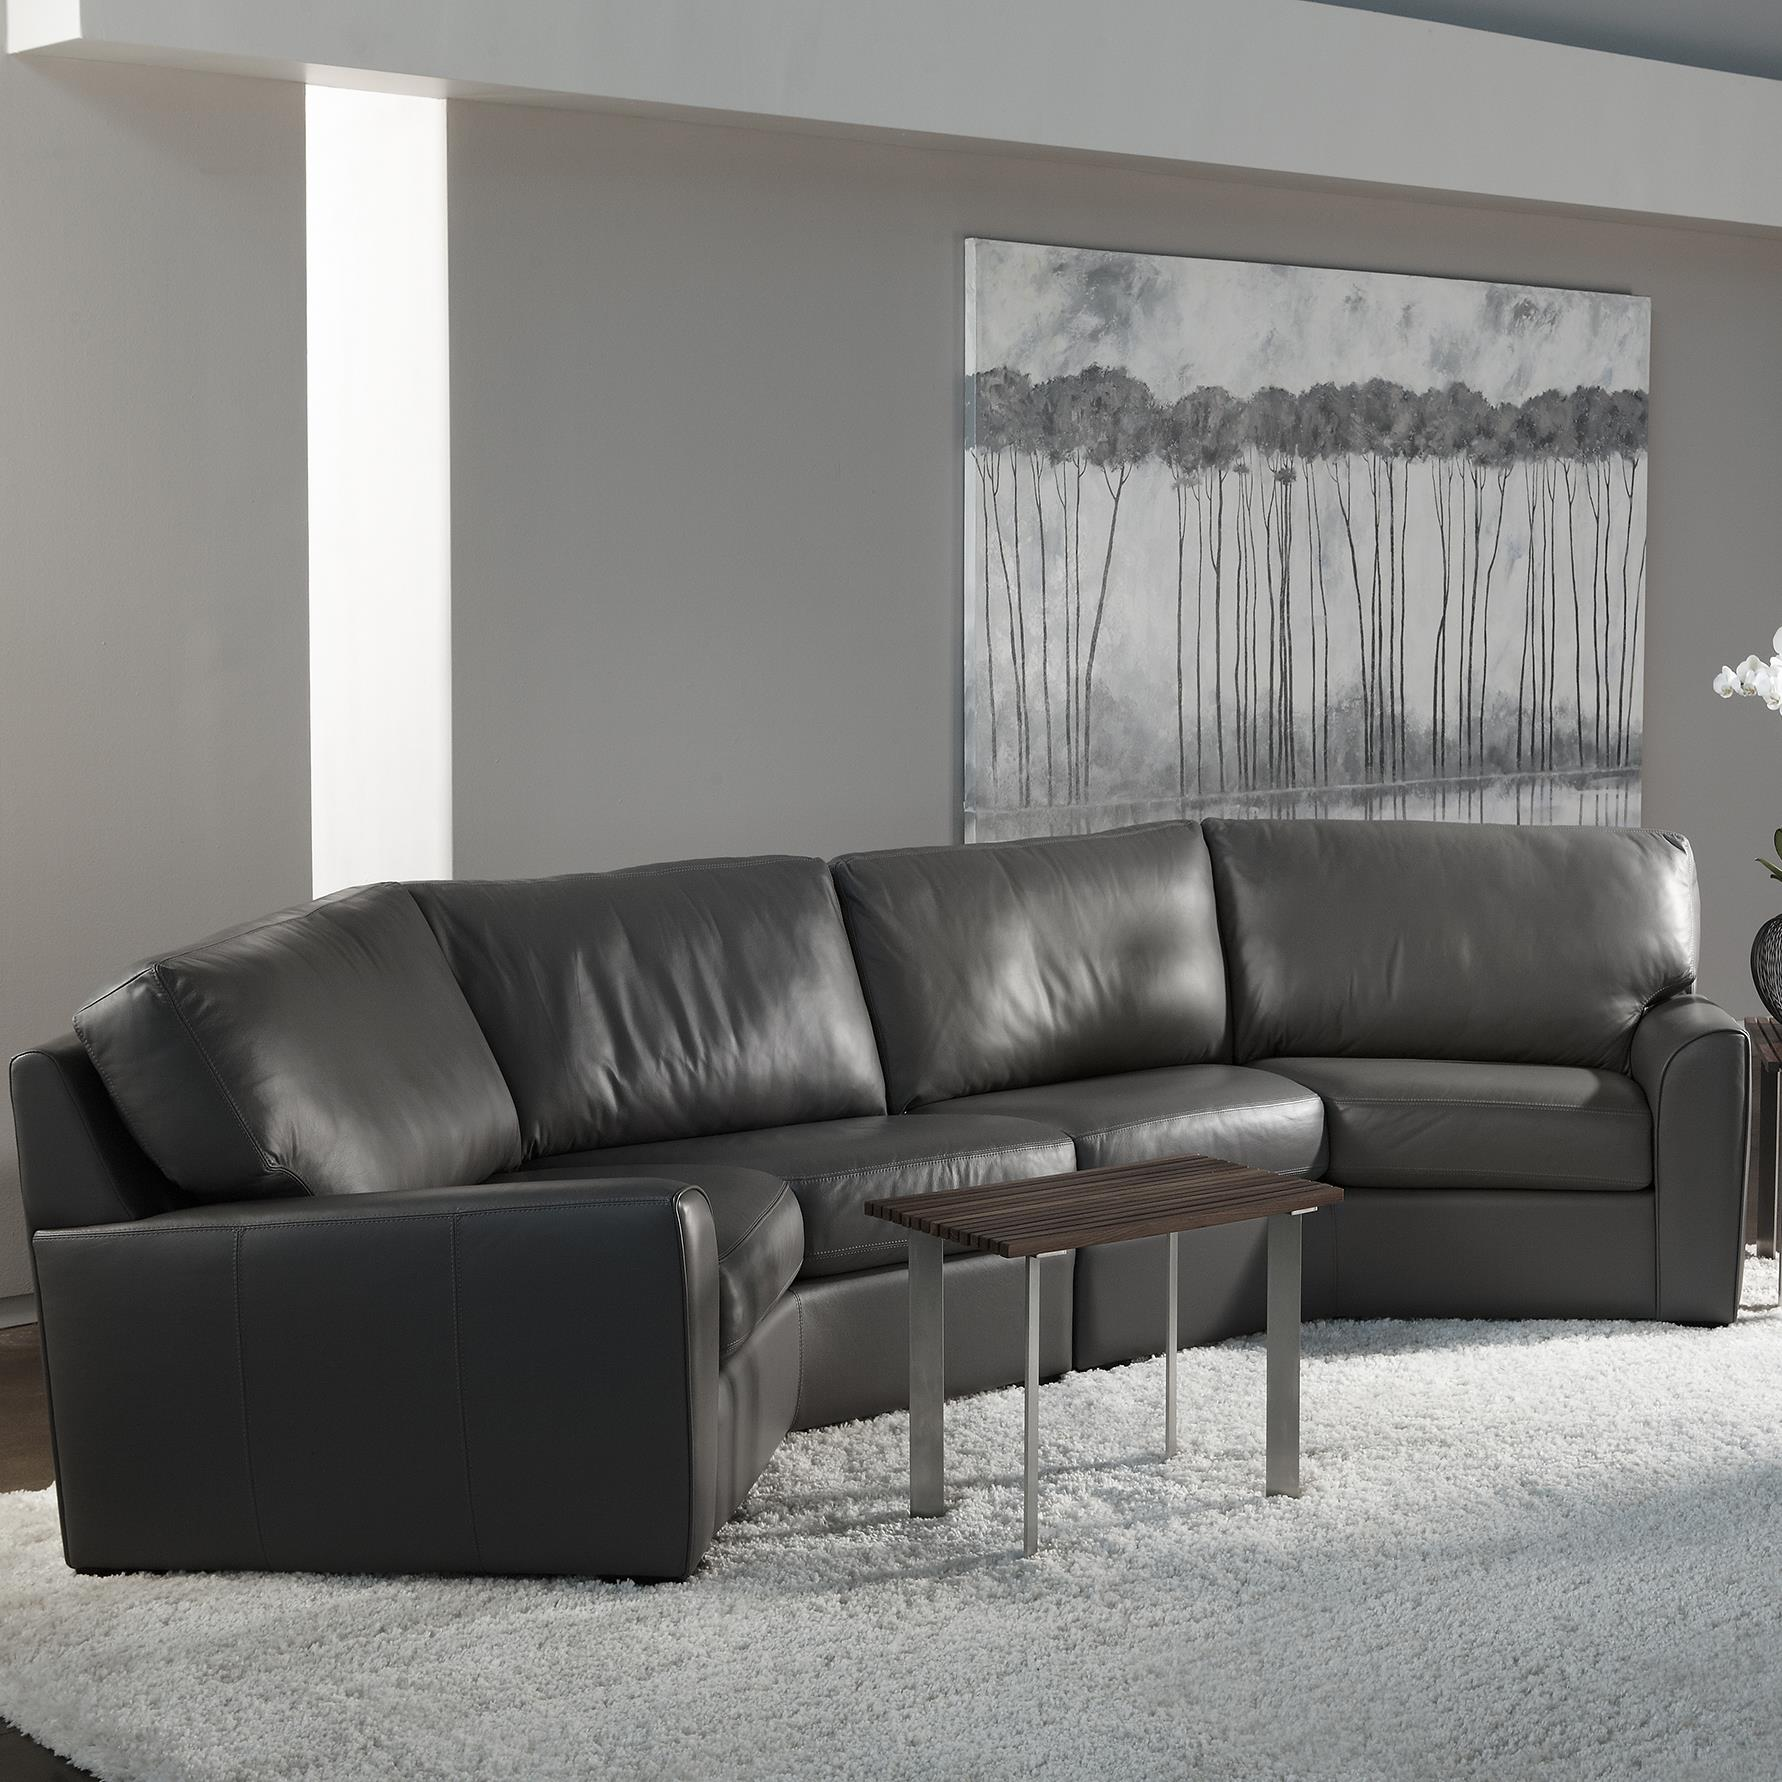 Kaden Sectional Sofa by American Leather at Malouf Furniture Co.